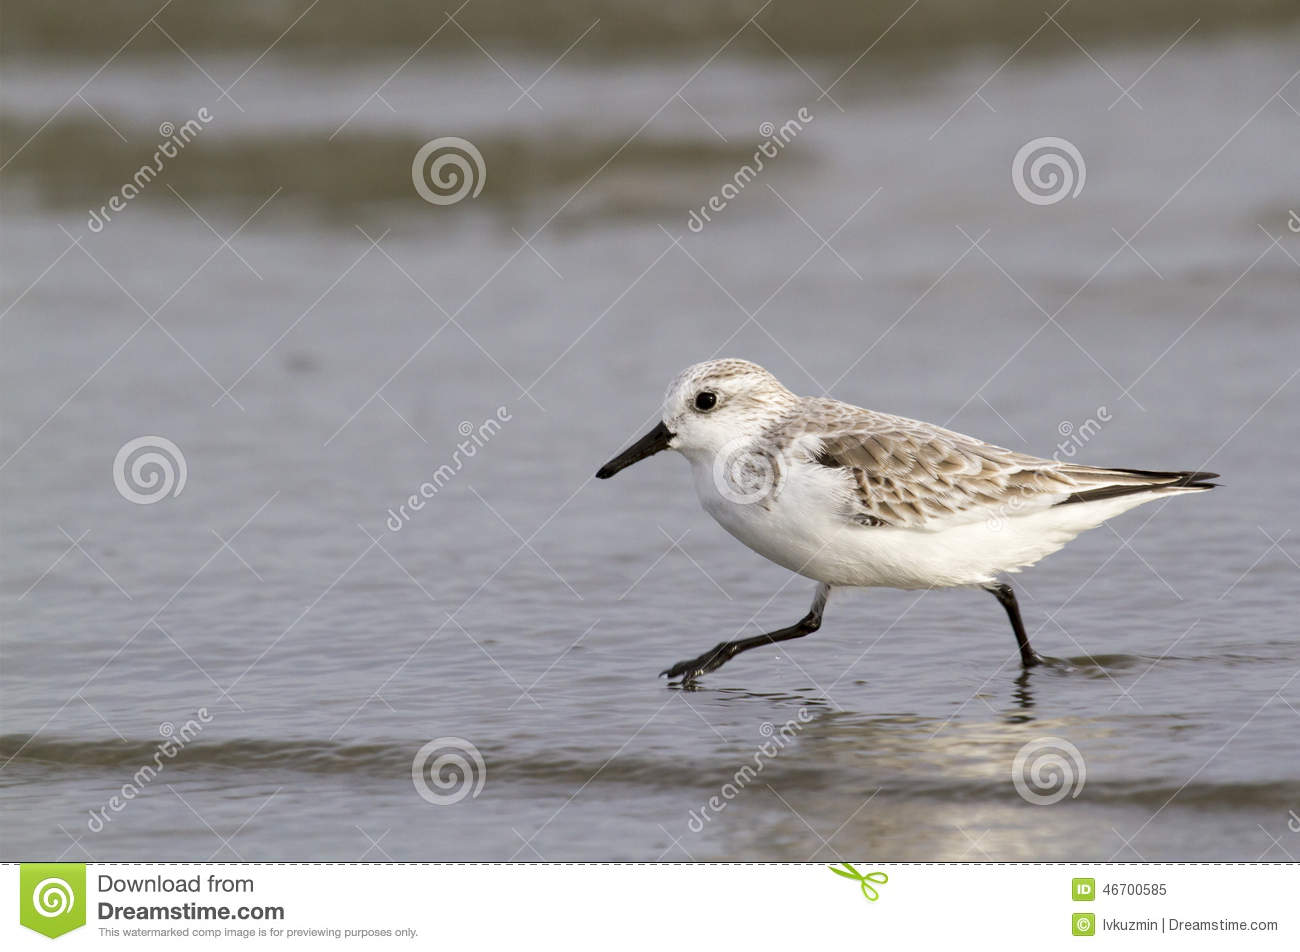 Sanderling (Calidris Alba) In Winter Plumage Foraging On The Ocean.